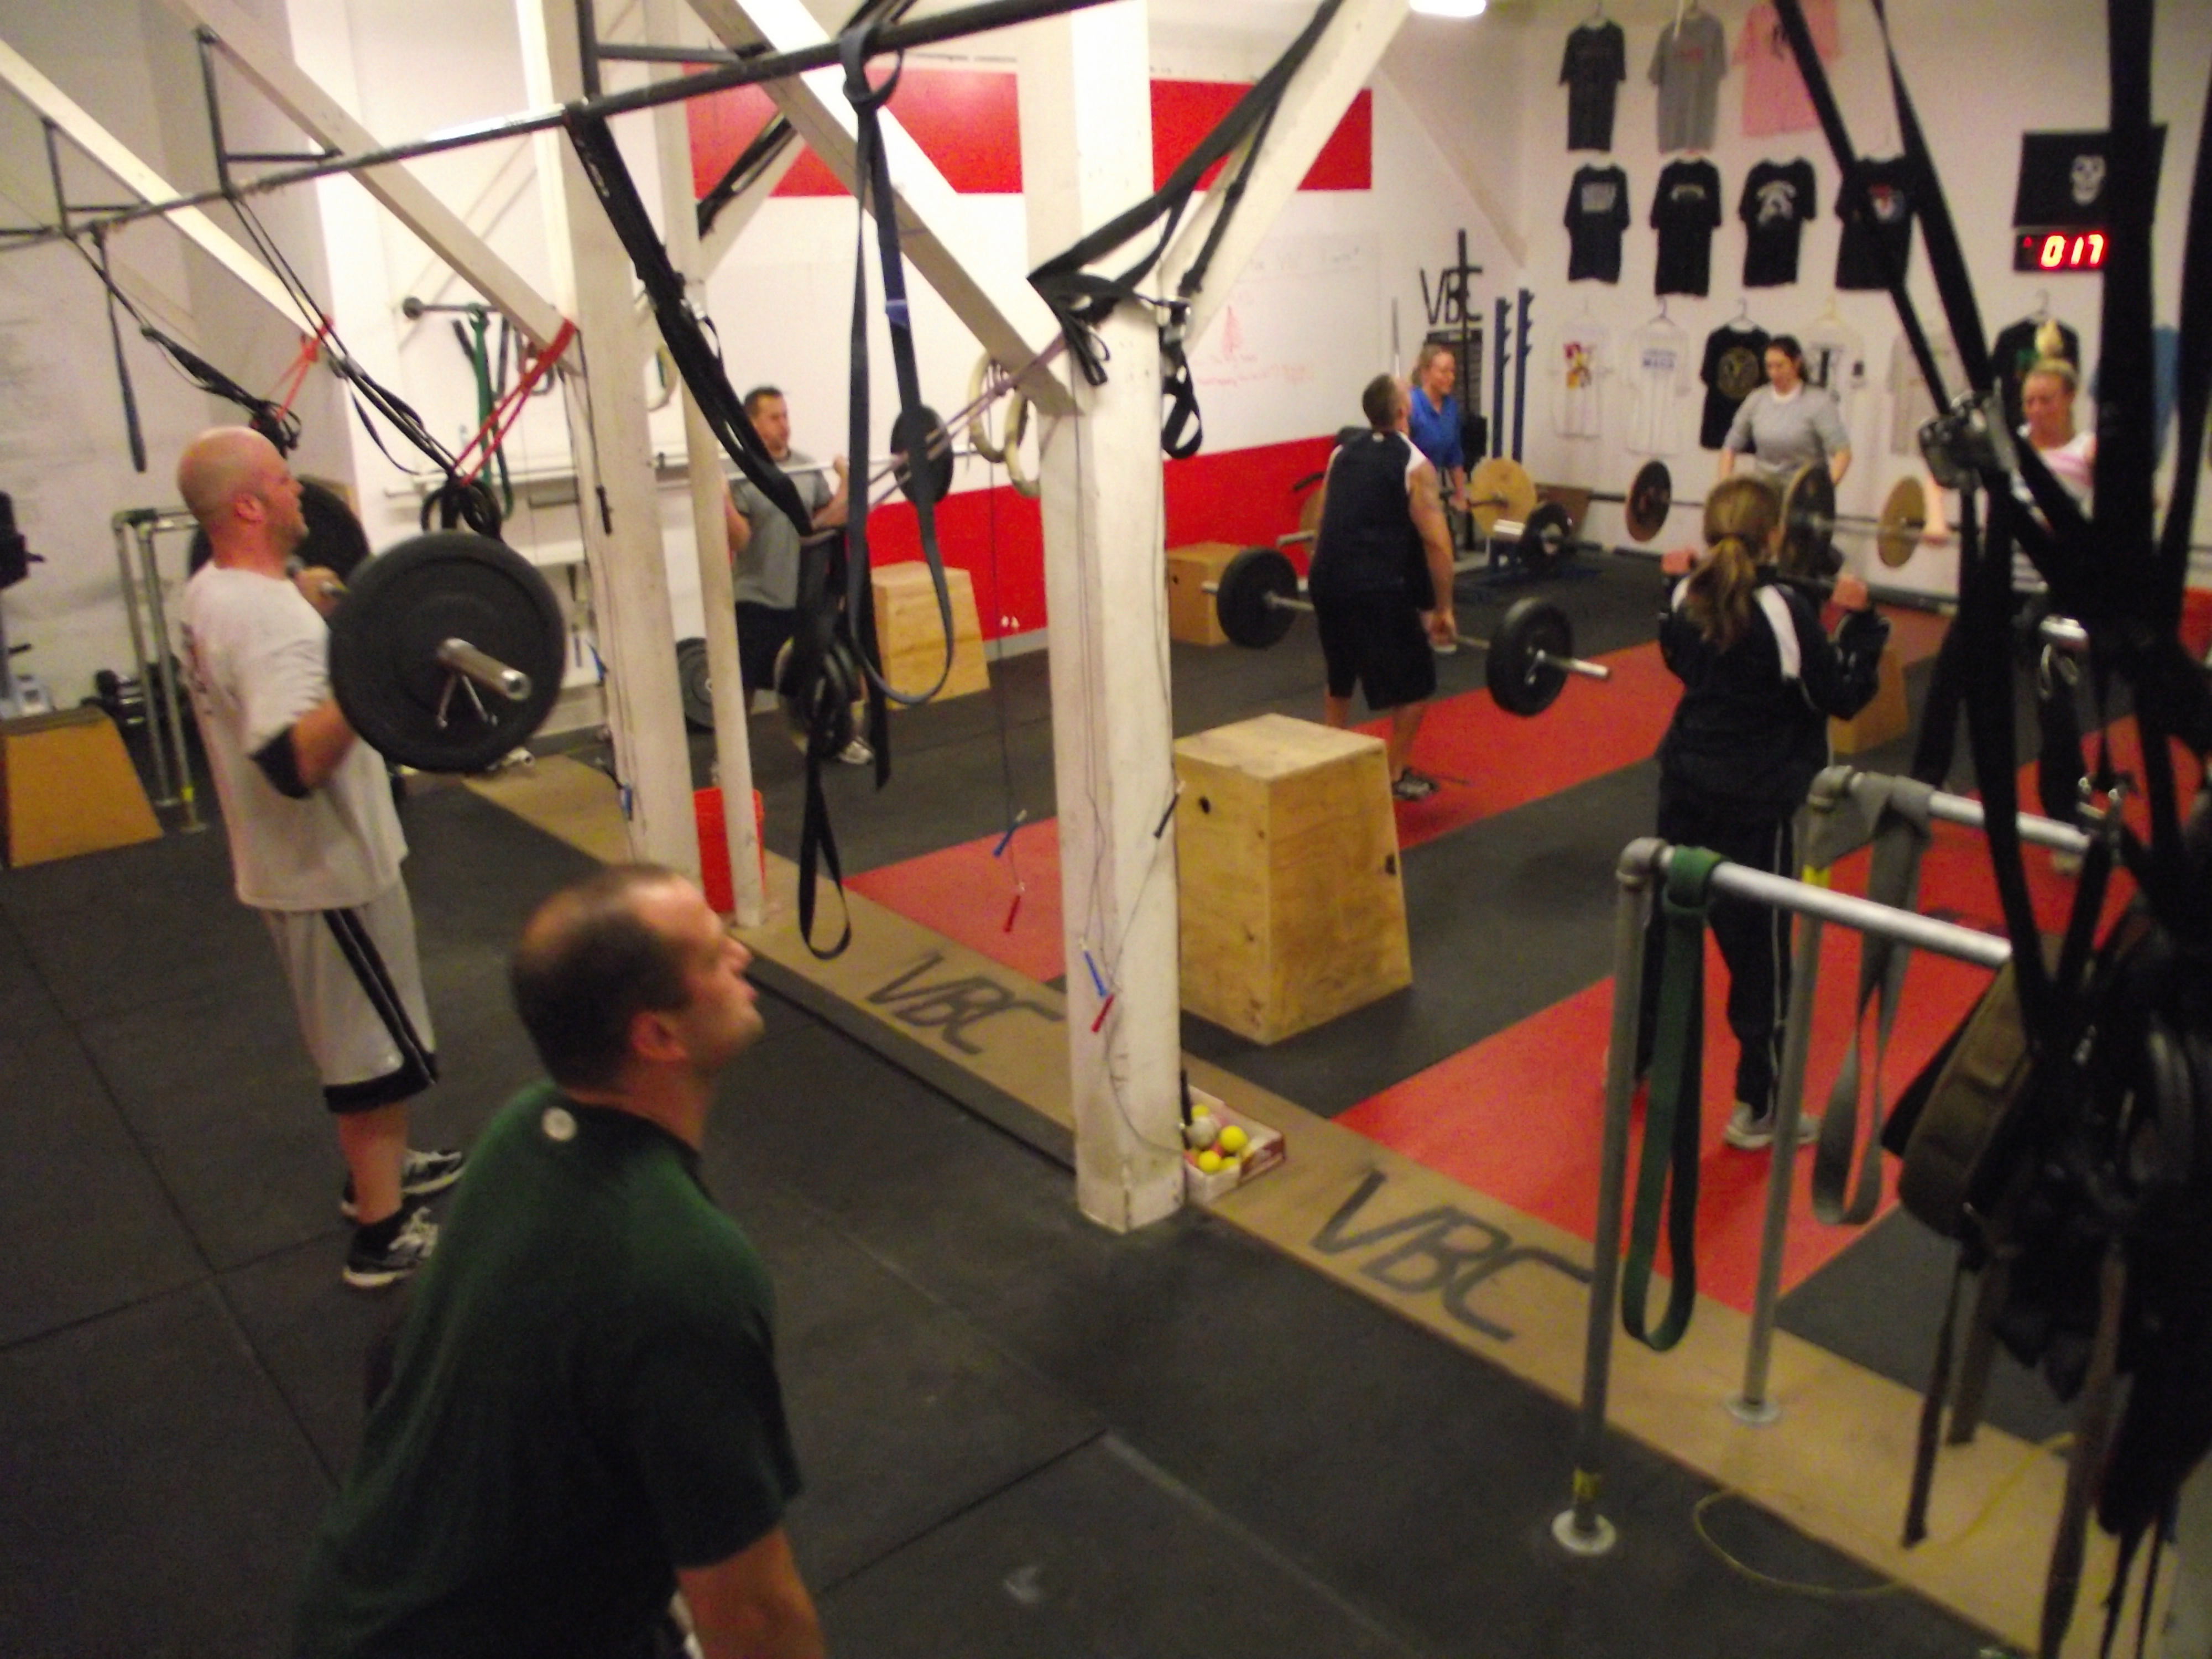 Some of the 5:30 pmers hitting their WOD. Keep the Classes Growing as it is only a sign of Vagabonds Growth!